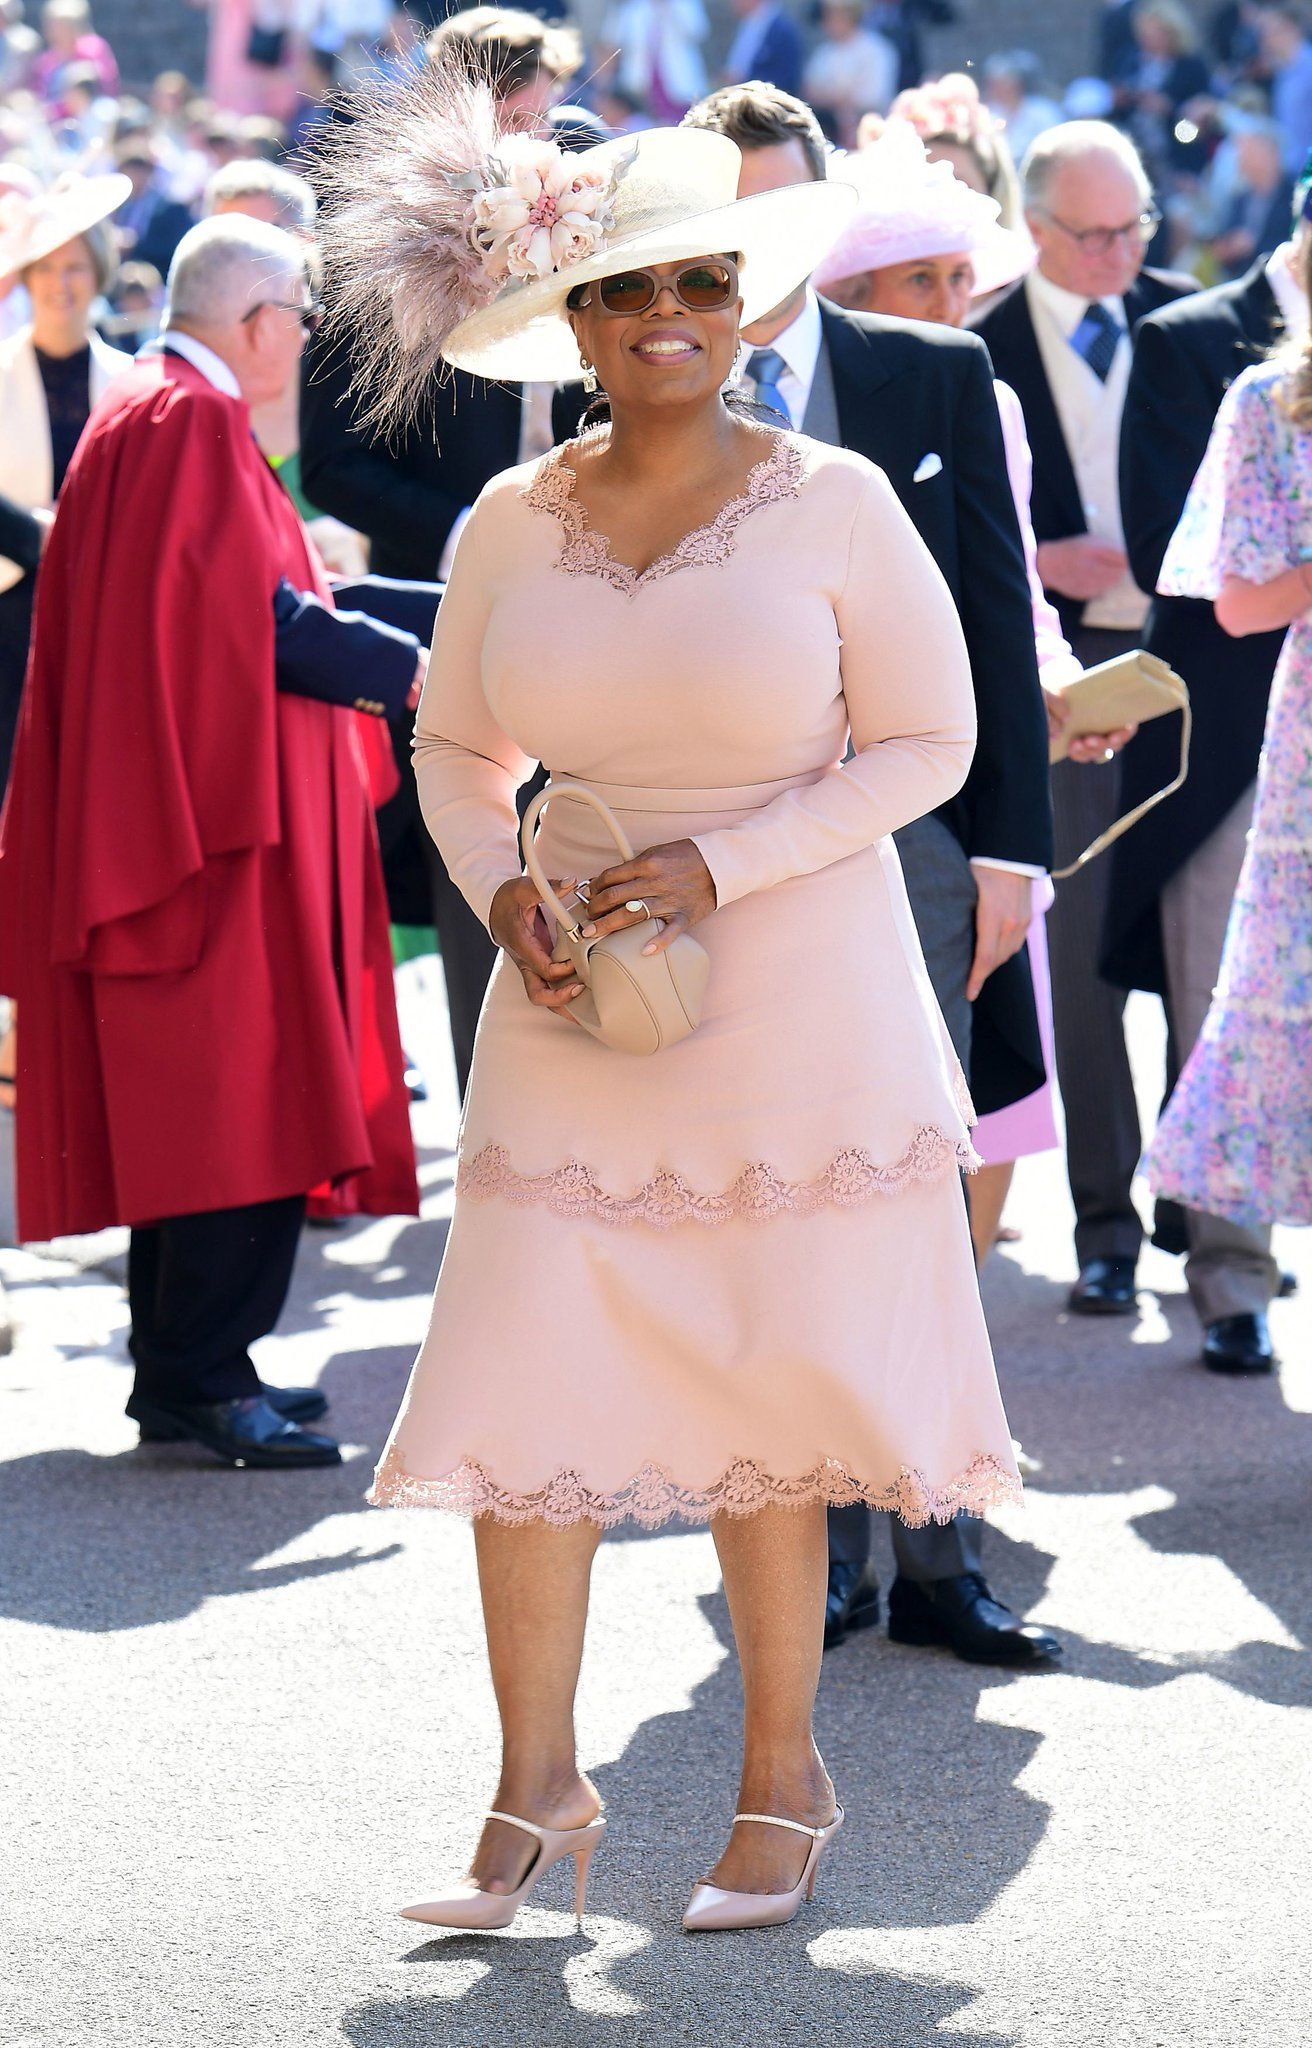 See George and Amal Clooney, @Oprah Winfrey and more arrive at the #RoyalWedding https://t.co/Oqw4xZ724f https://t.co/hmLdNGb5bs